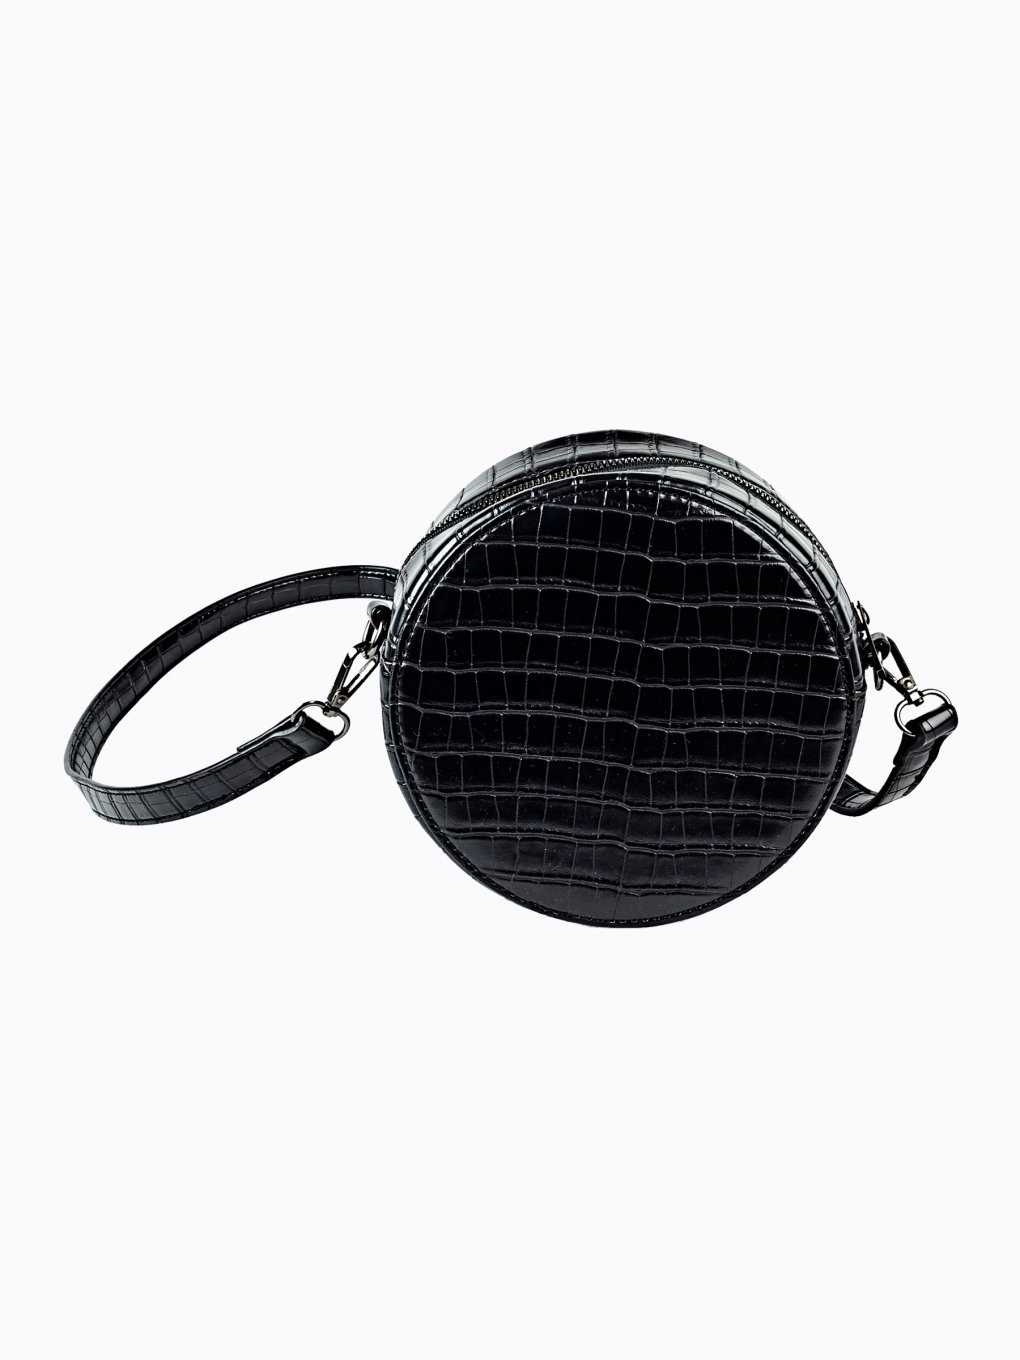 MINI ROUND CROSS BODY BAG